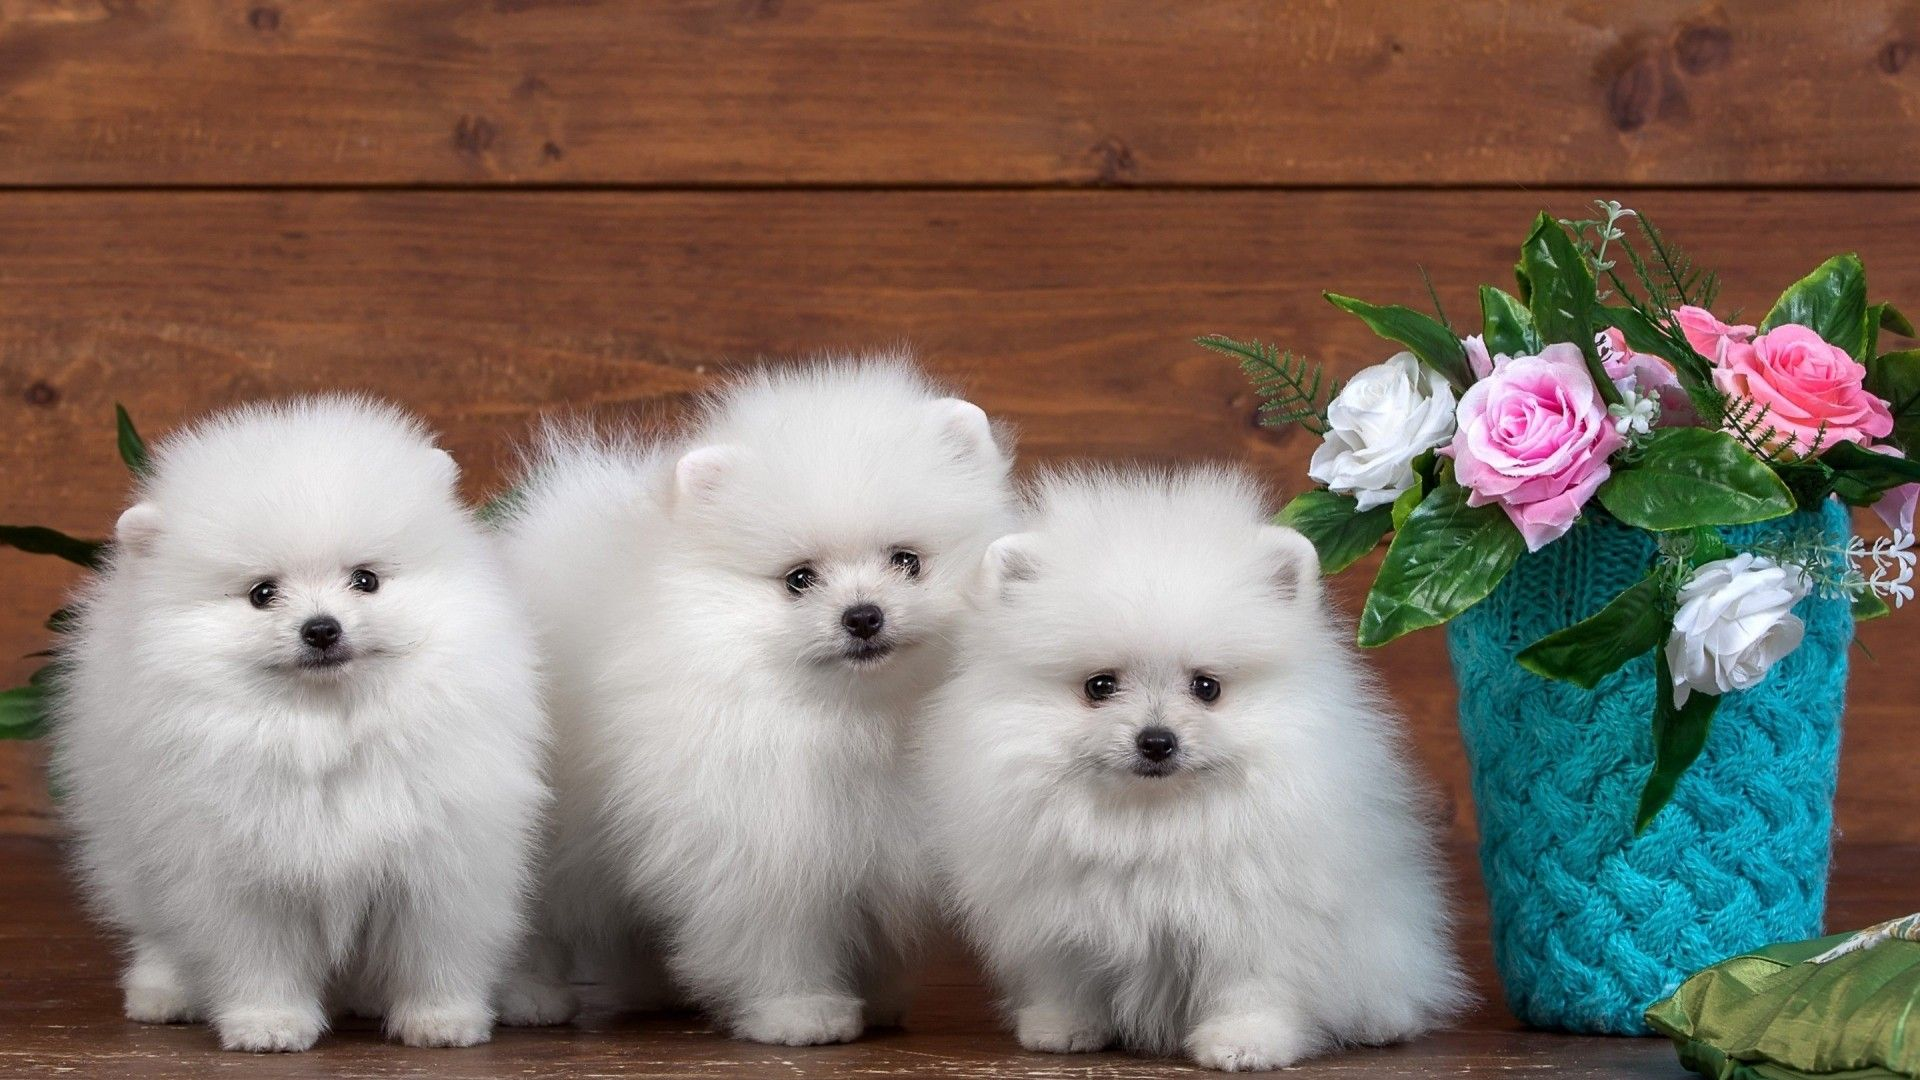 The Three Cute Spitz Dog Natural Picture 1920x1080 Need Iphone 6s Plus Wallpaper Background For With Images Cute Little Animals White Pomeranian Puppies Cute Dogs